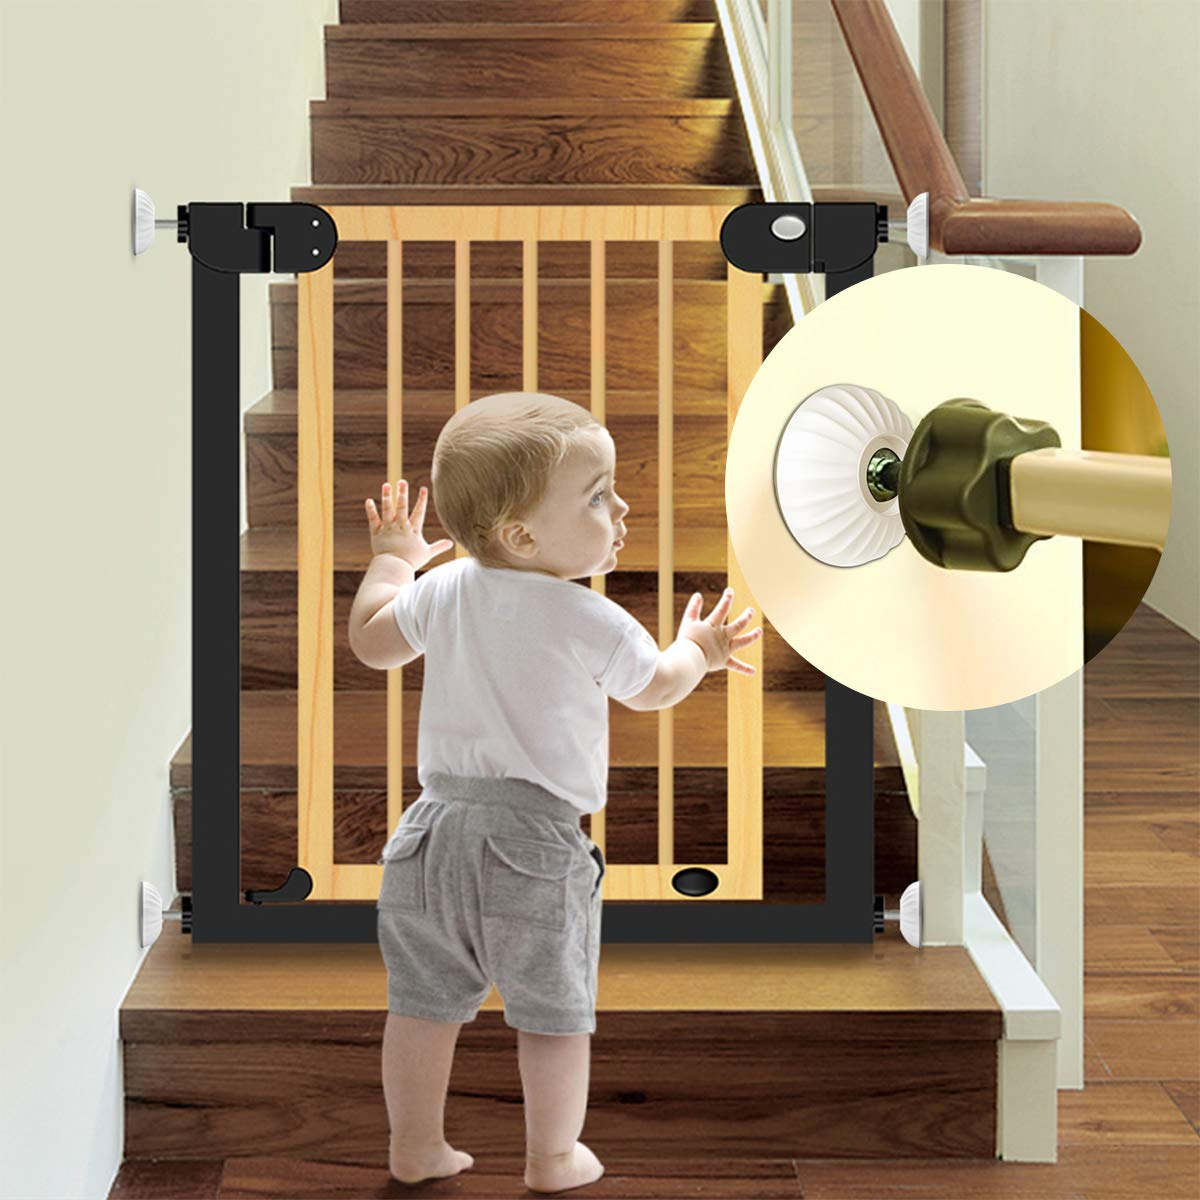 LATME Baby Gate Wall Protector Make Pressure Mounted Safety Indoor Gates More Stable-Wall Damage-Free Fit for Bottom of Gates Doorway Stairs Baseboard Work with Dog Pet Child Gates (White, Round) by LATME (Image #1)